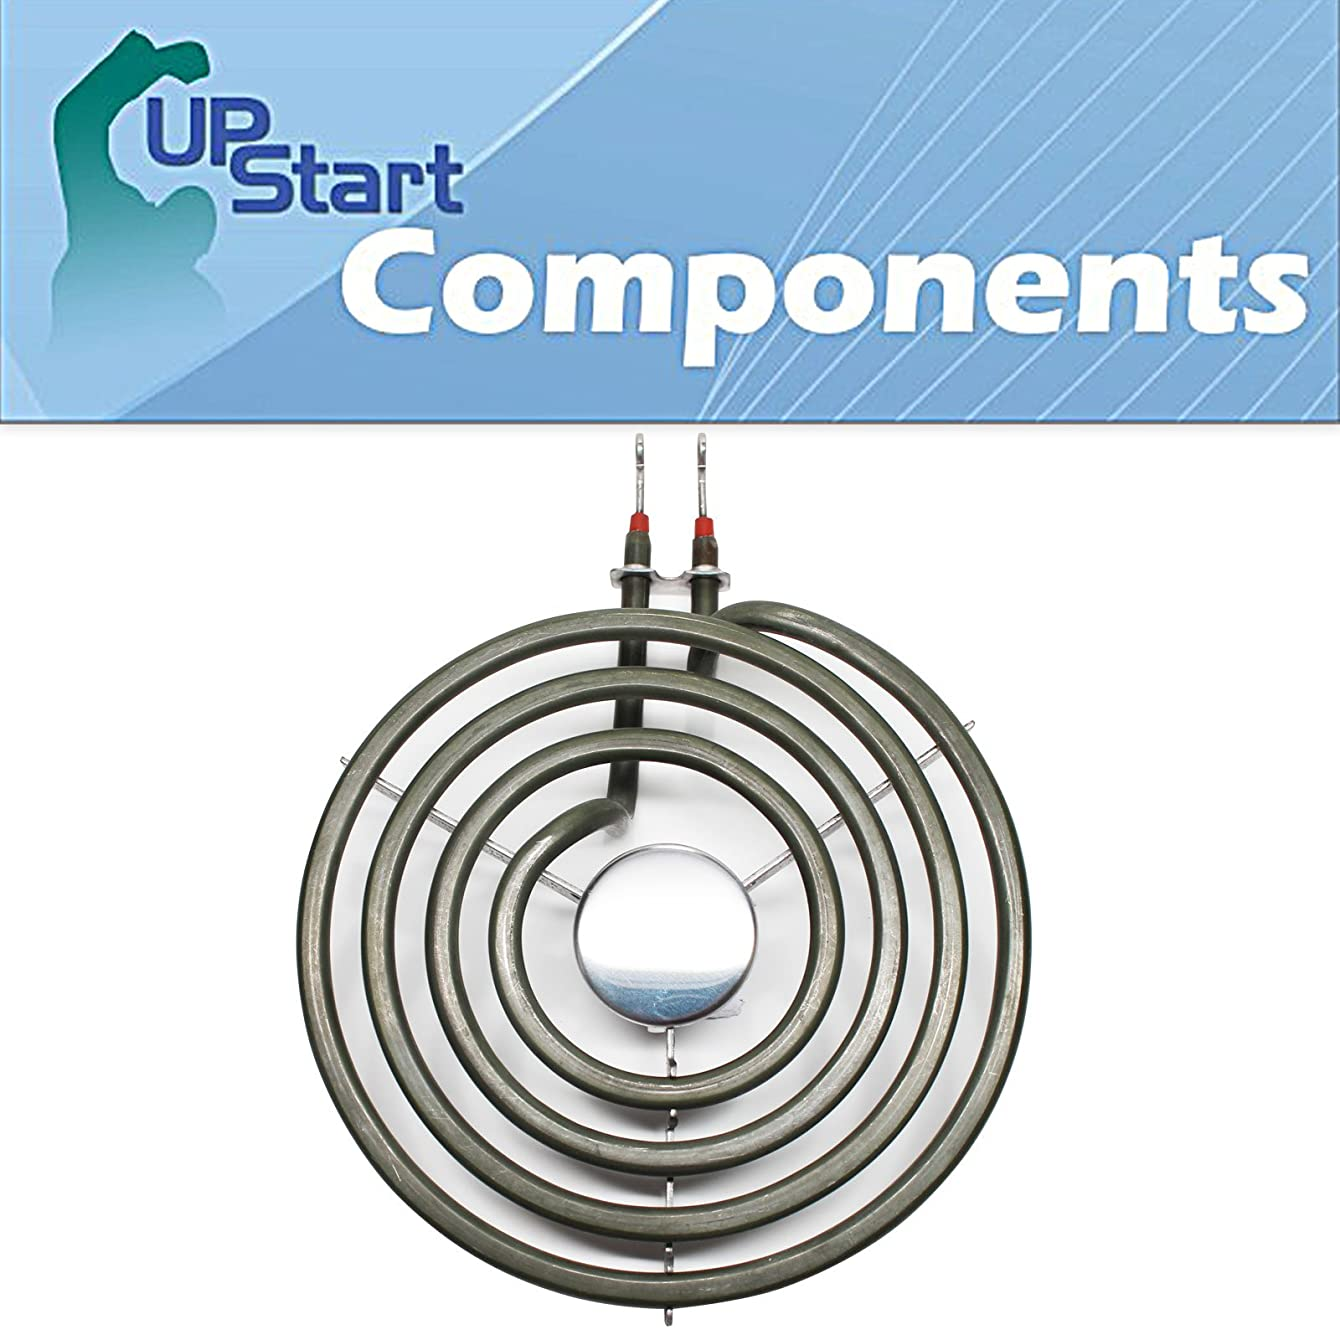 Replacement Whirlpool RF330PXDN0 6 inch 4 Turns Surface Burner Element - Compatible Whirlpool 660532 Heating Element for Range, Stove & Cooktop